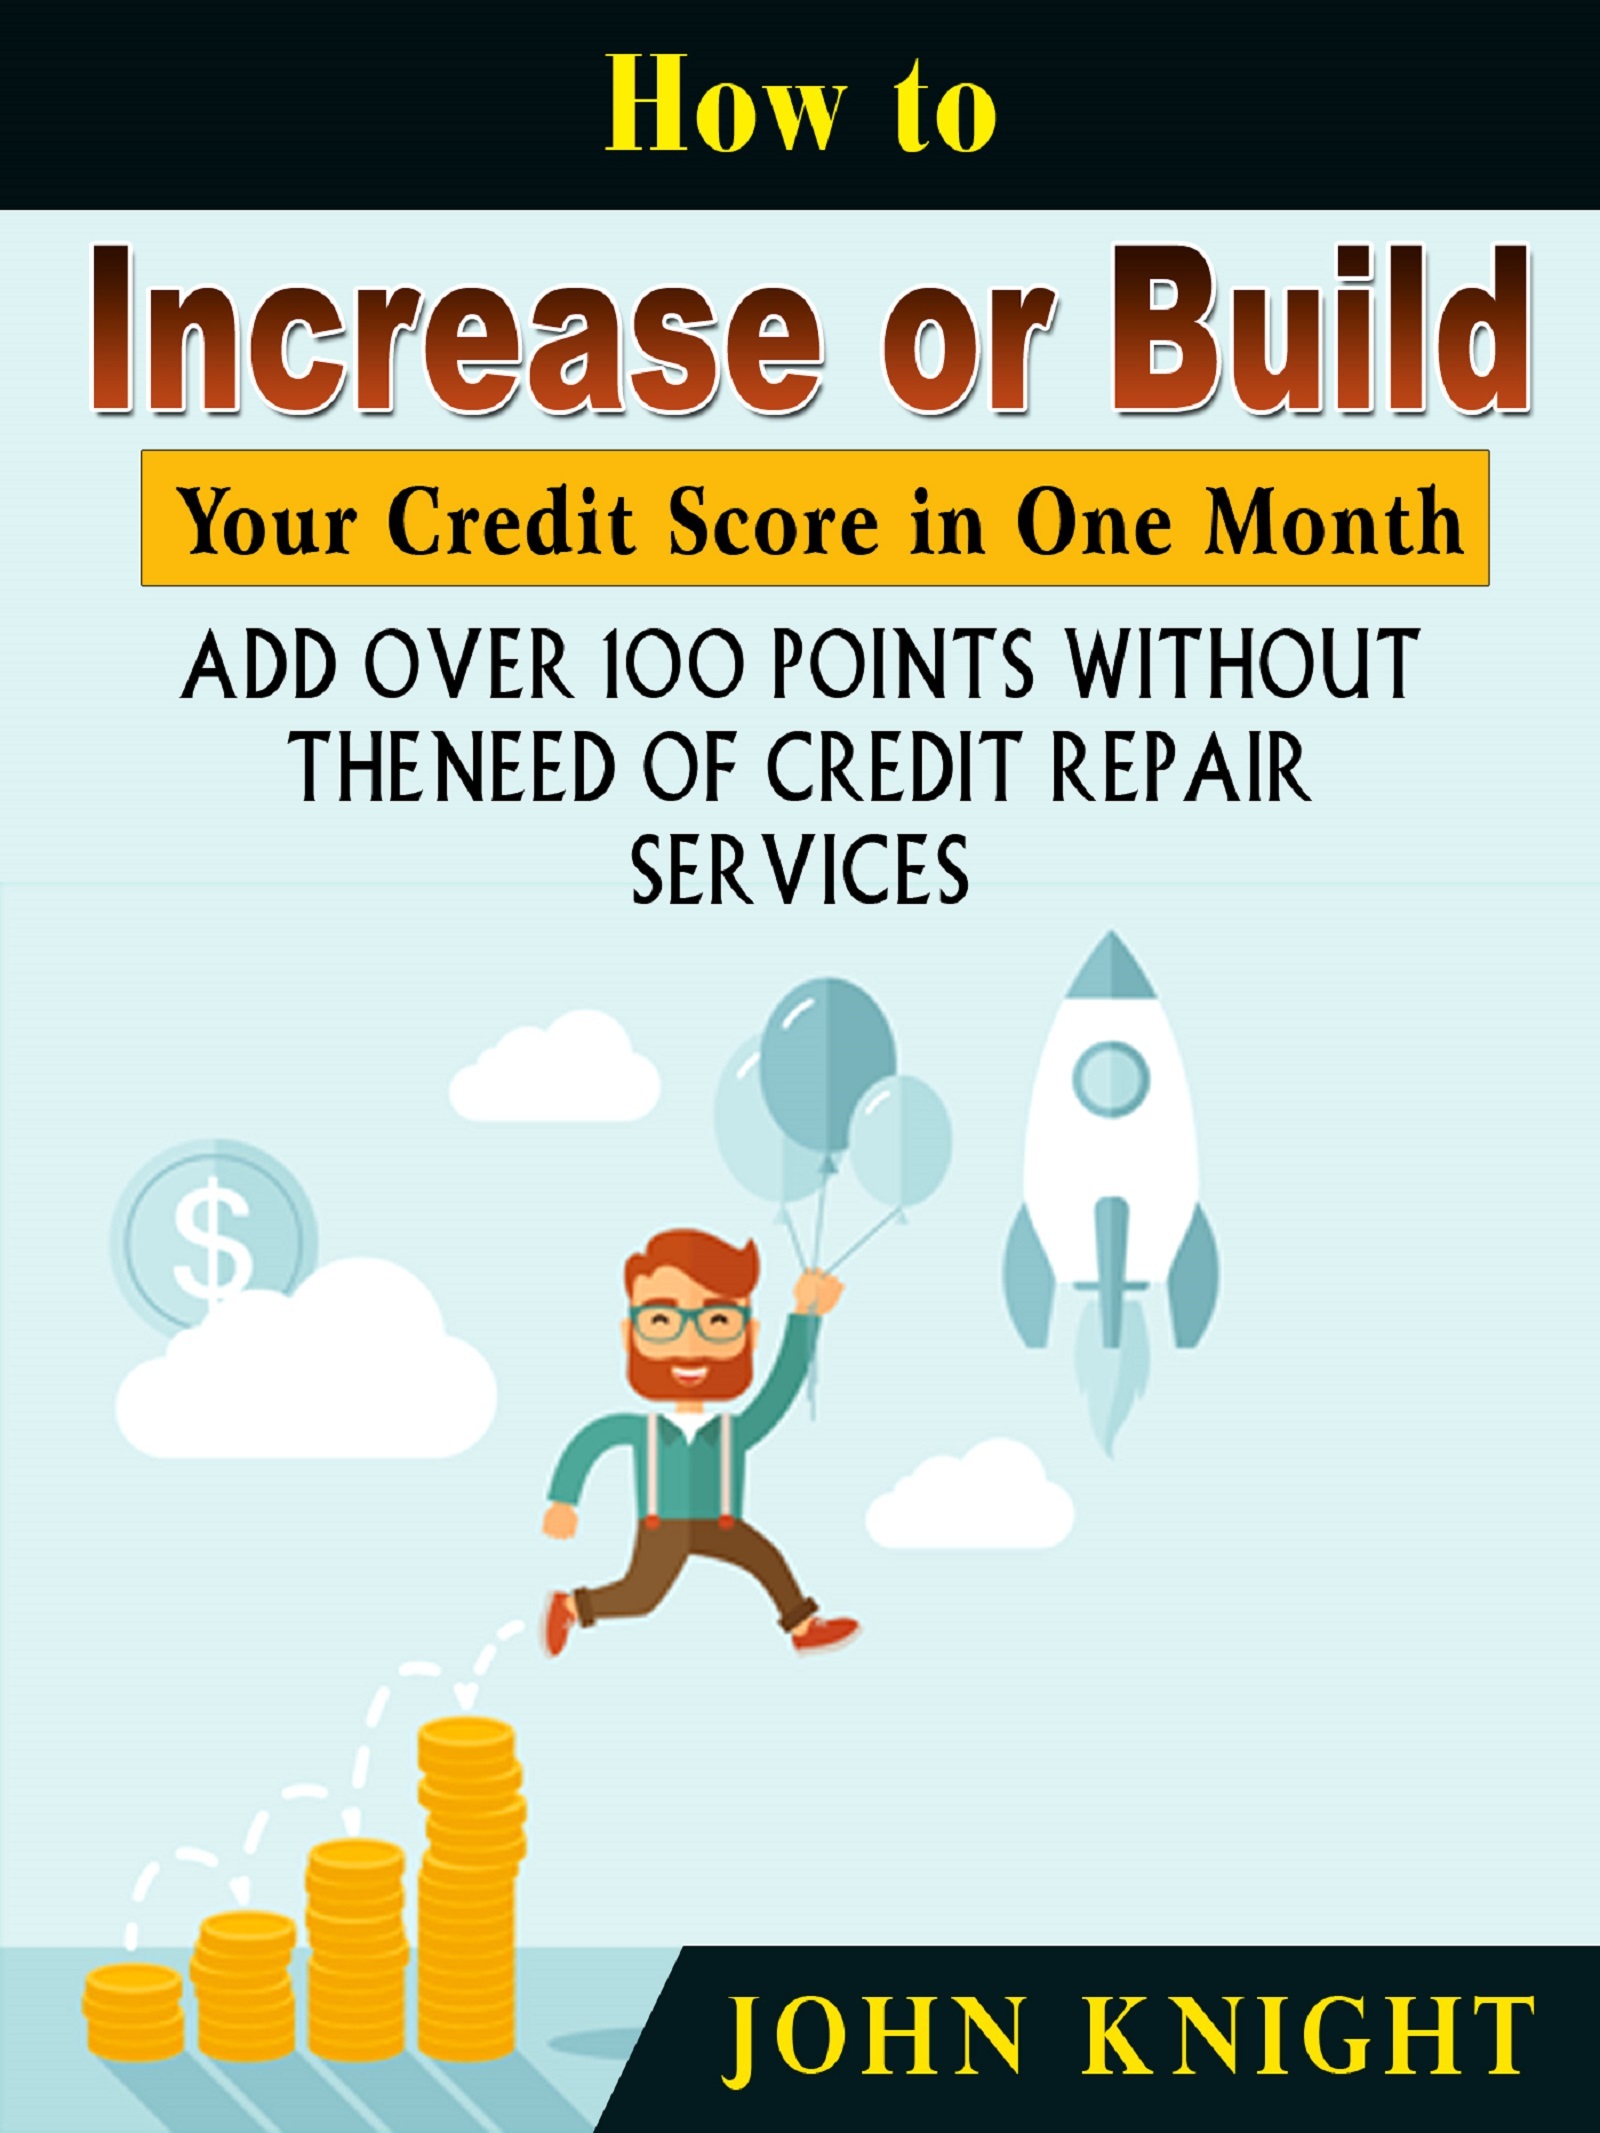 How to increase or build your credit score in one month